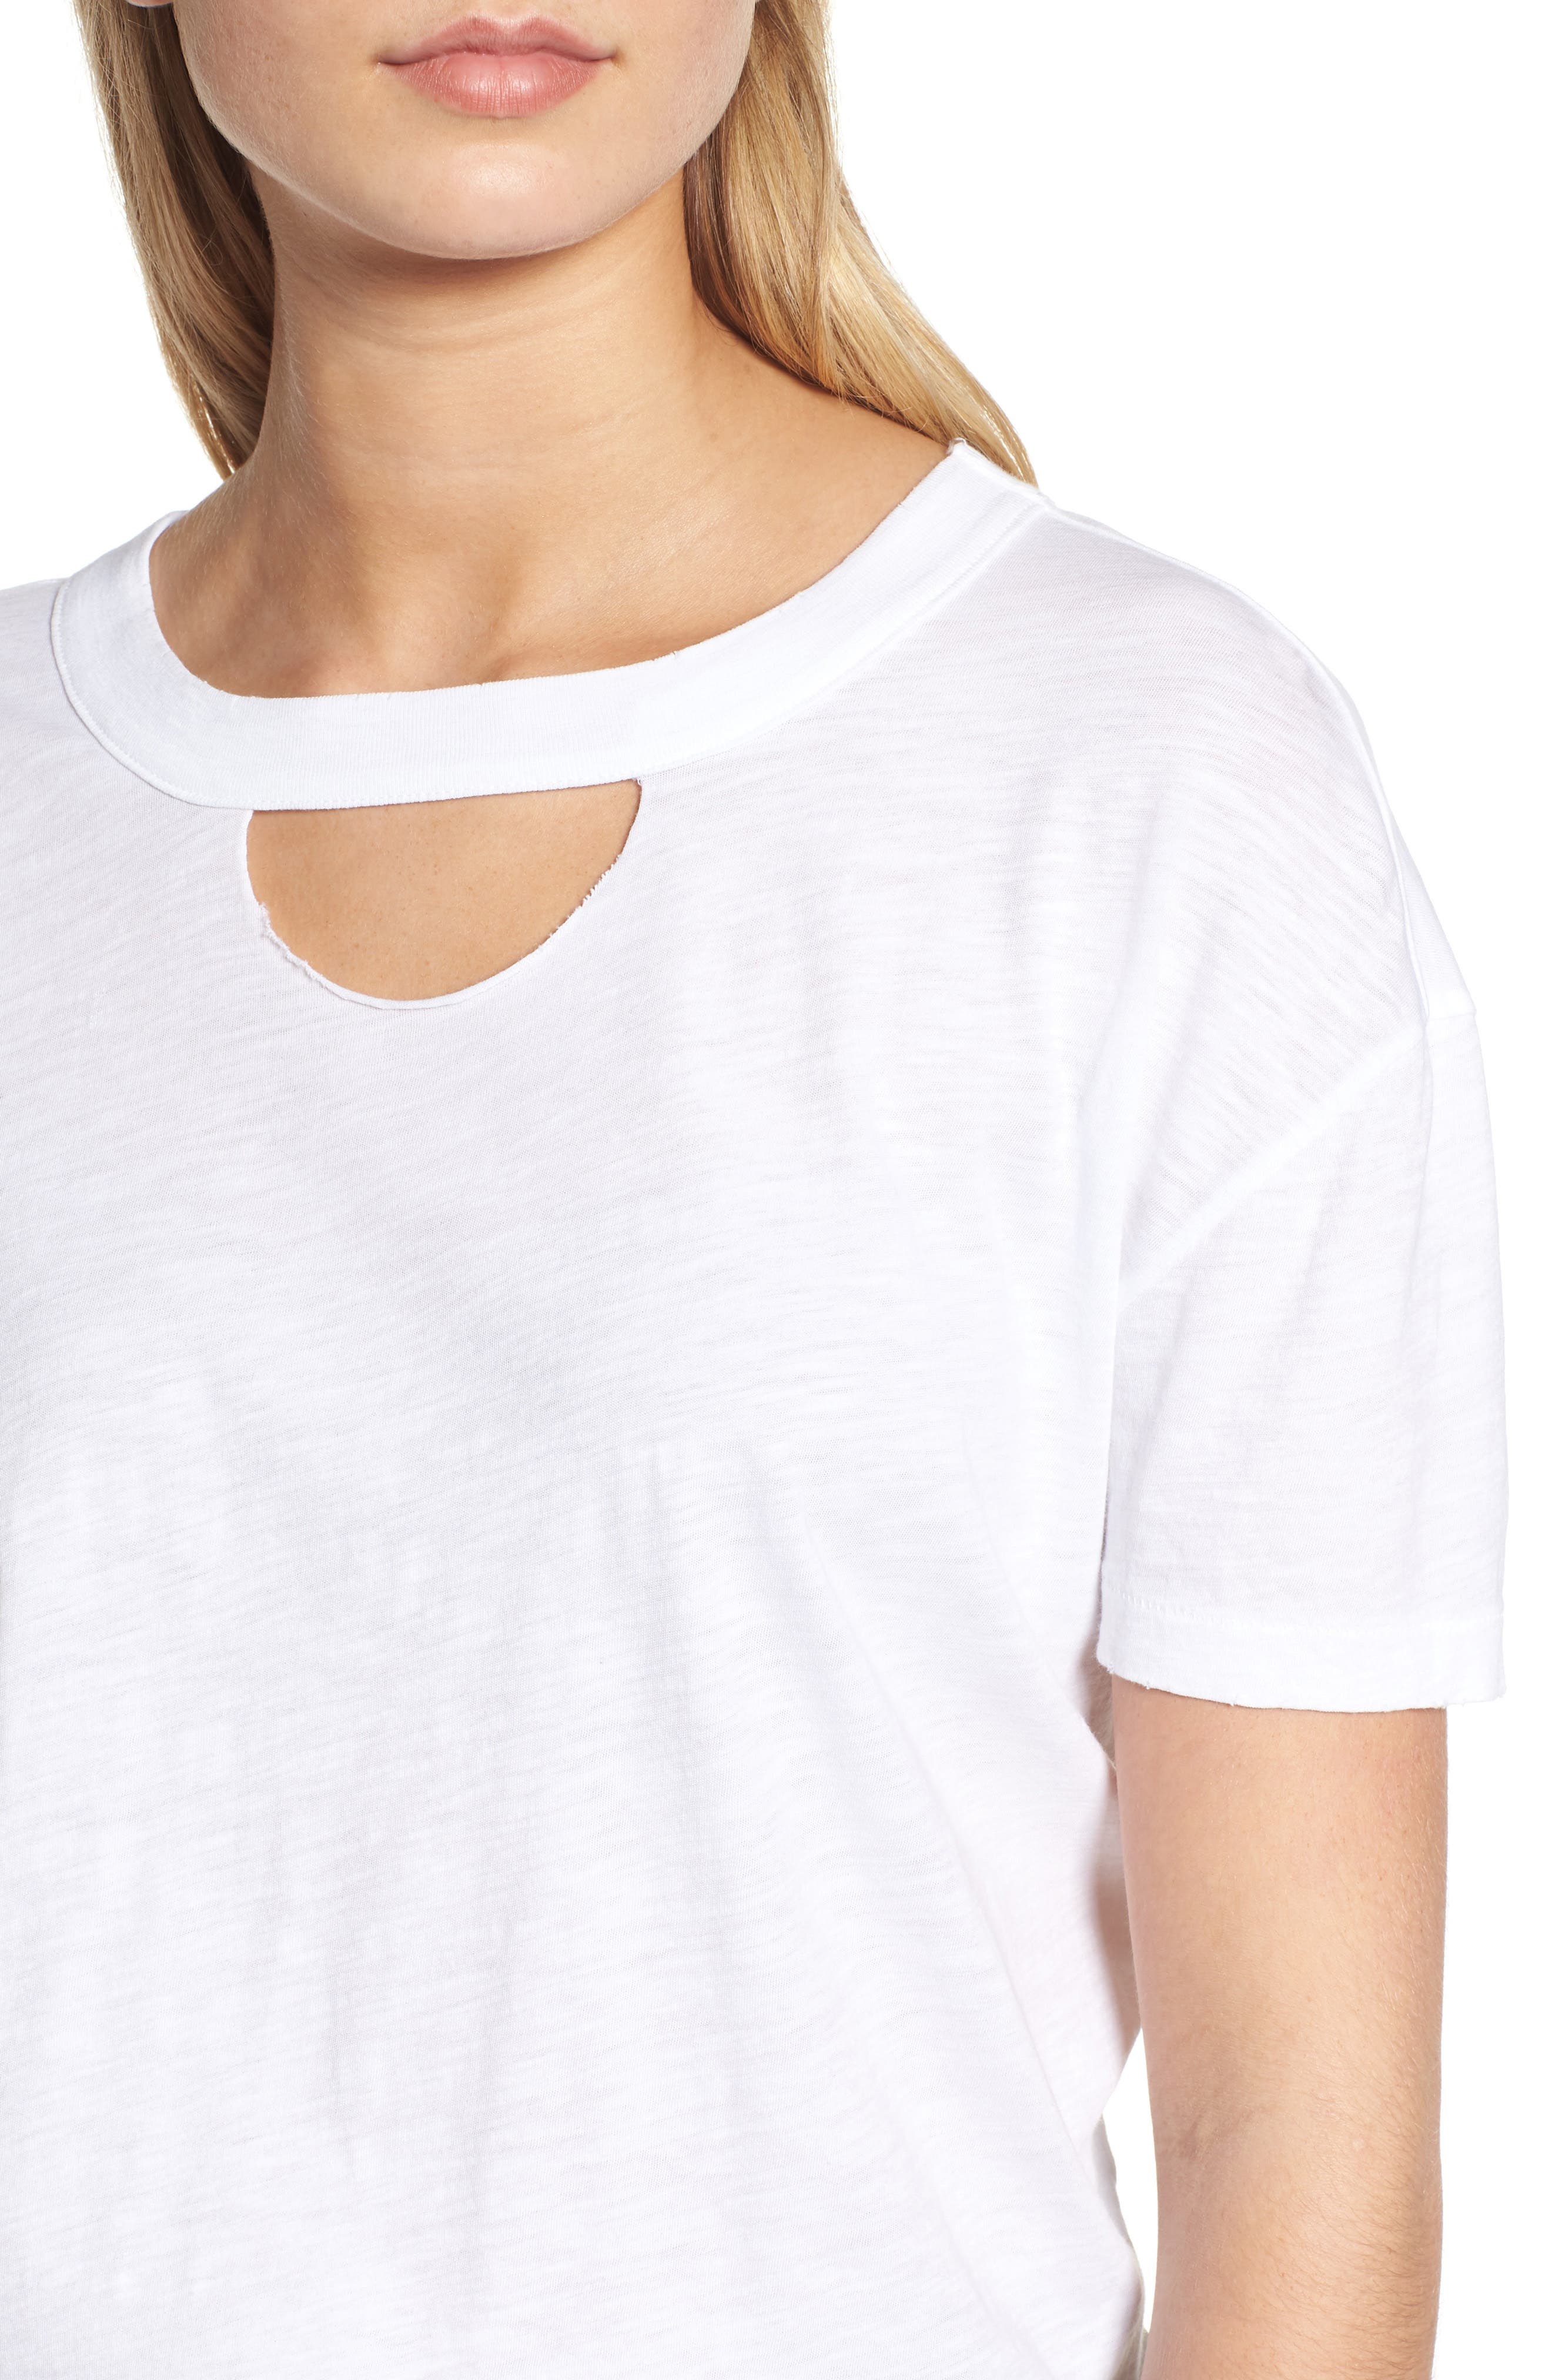 Allen Cutout Detail Boyfriend Cotton Tee,                             Alternate thumbnail 4, color,                             WHITE